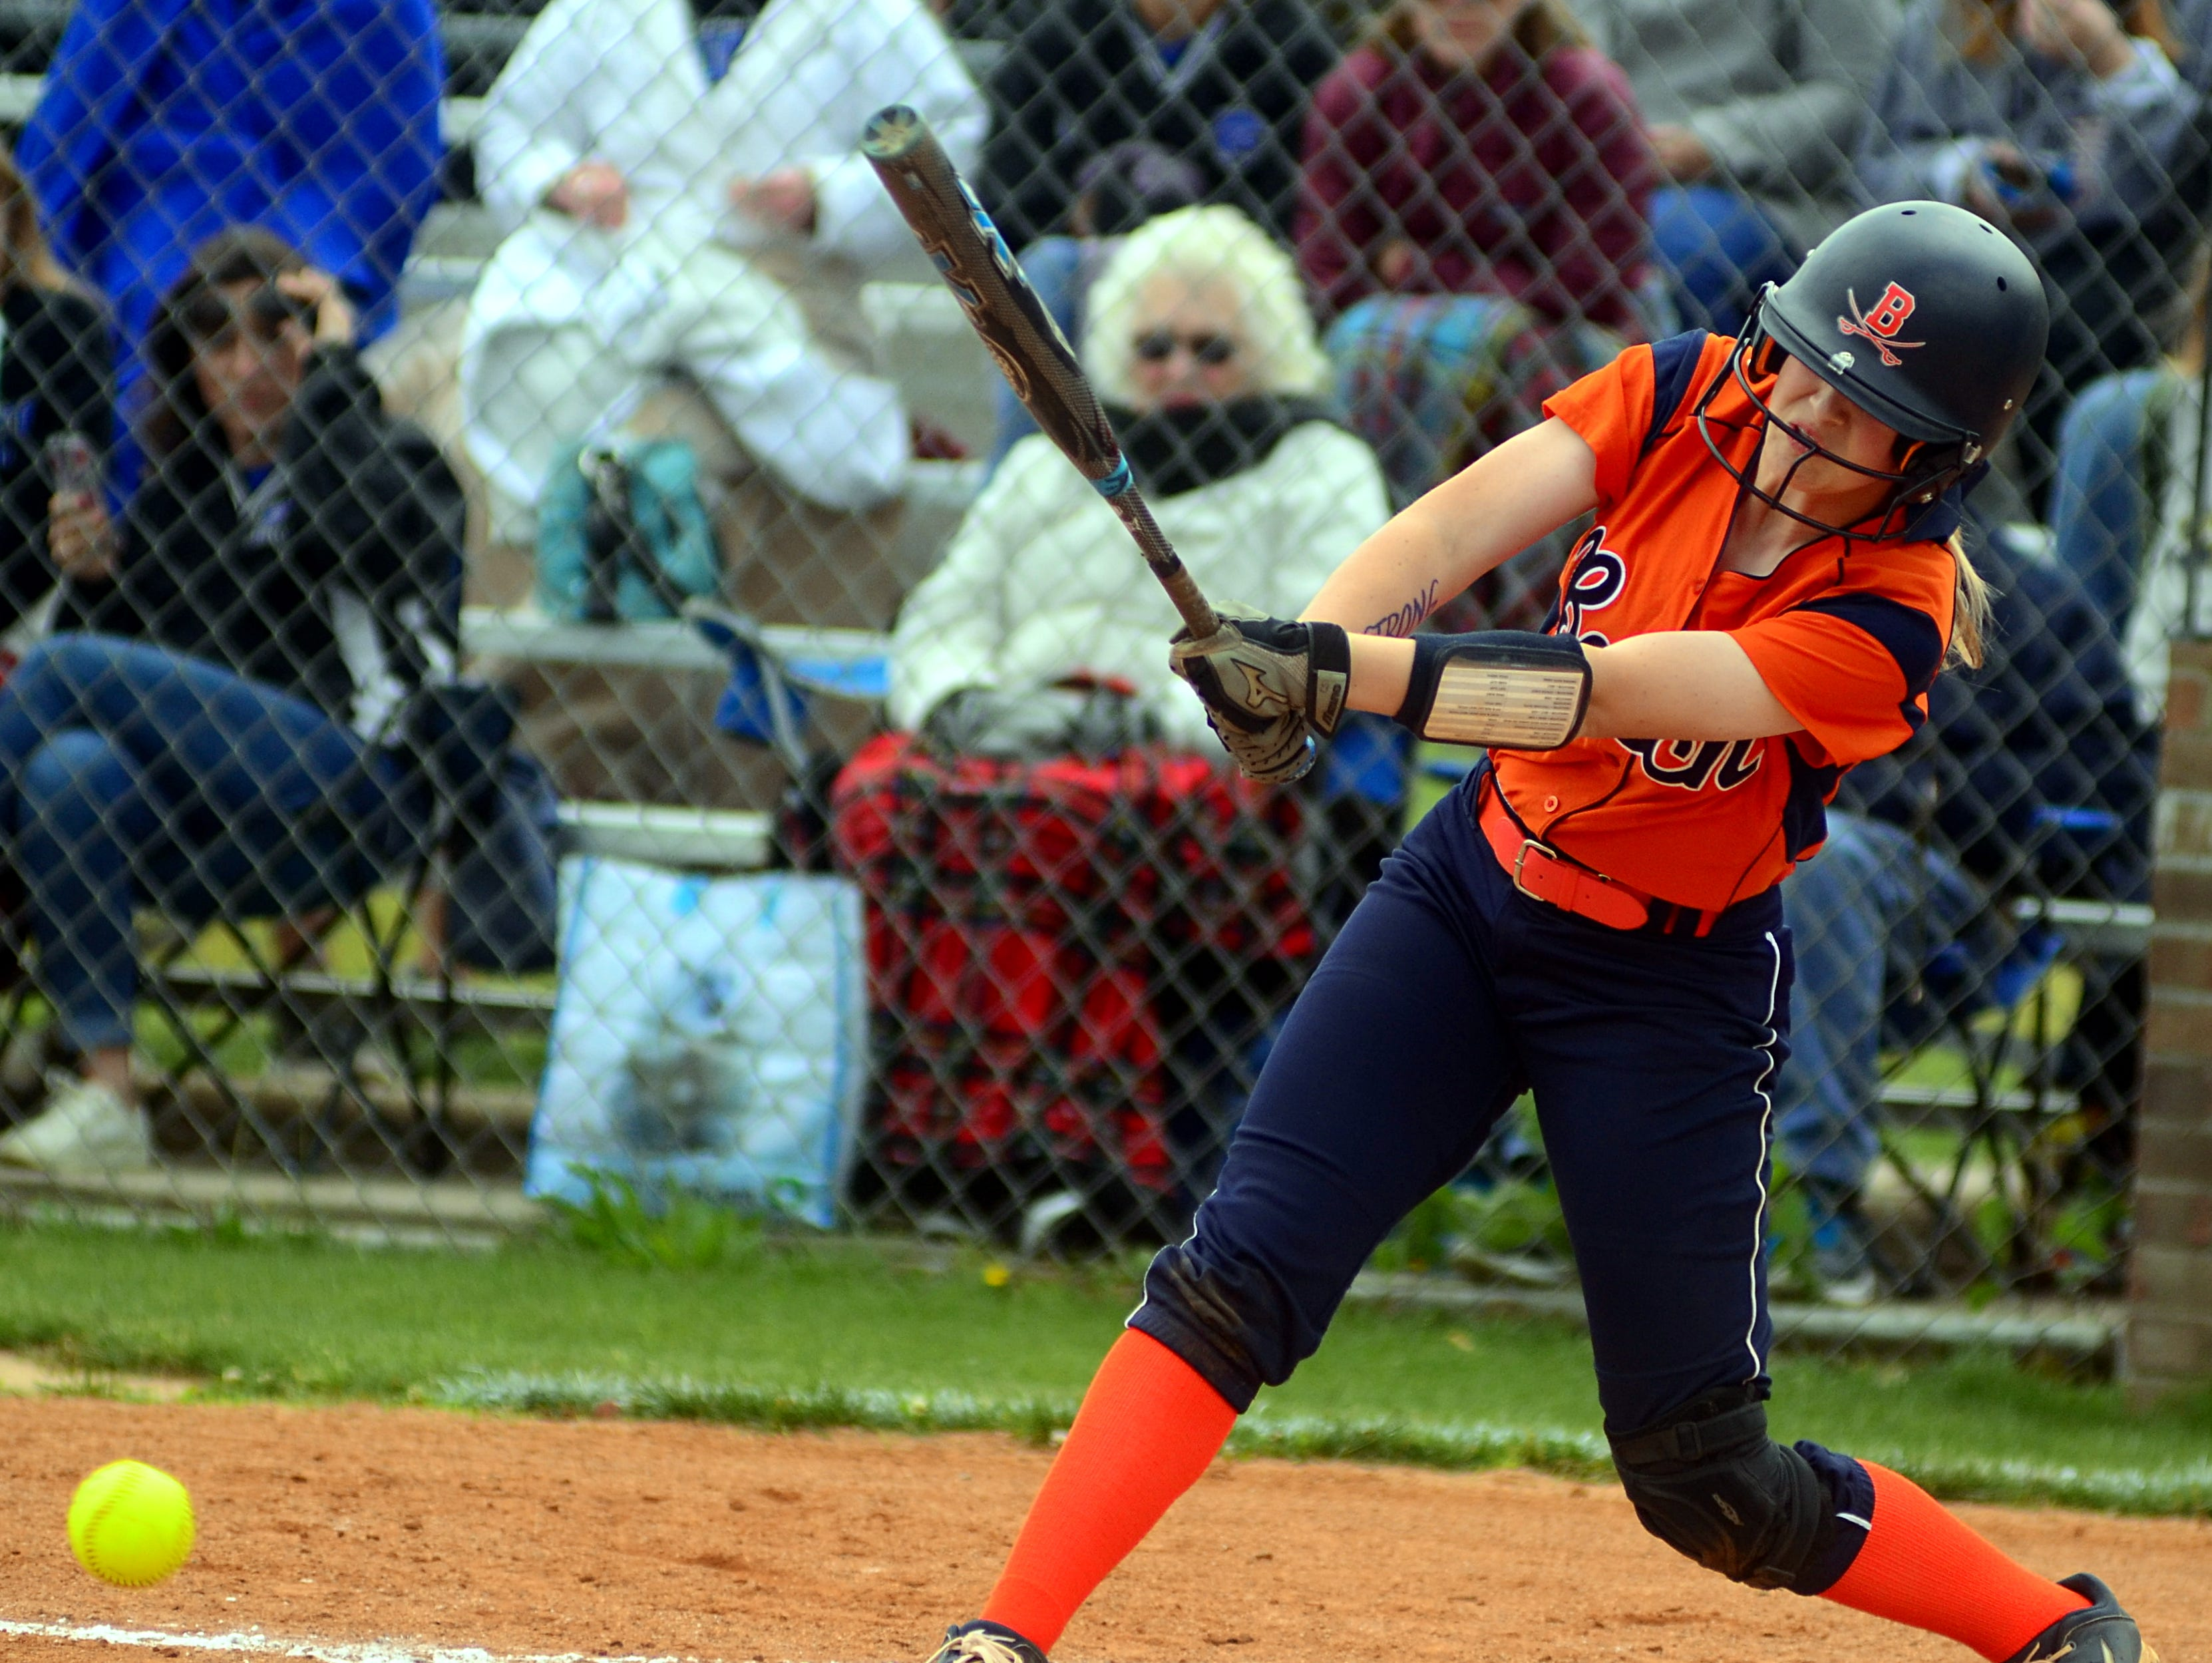 Beech High freshman Carly Sperlich produced two hits, including a double, in Saturday's 6-3 loss to Wilson Central in the District 9-AAA Tournament losers bracket final.